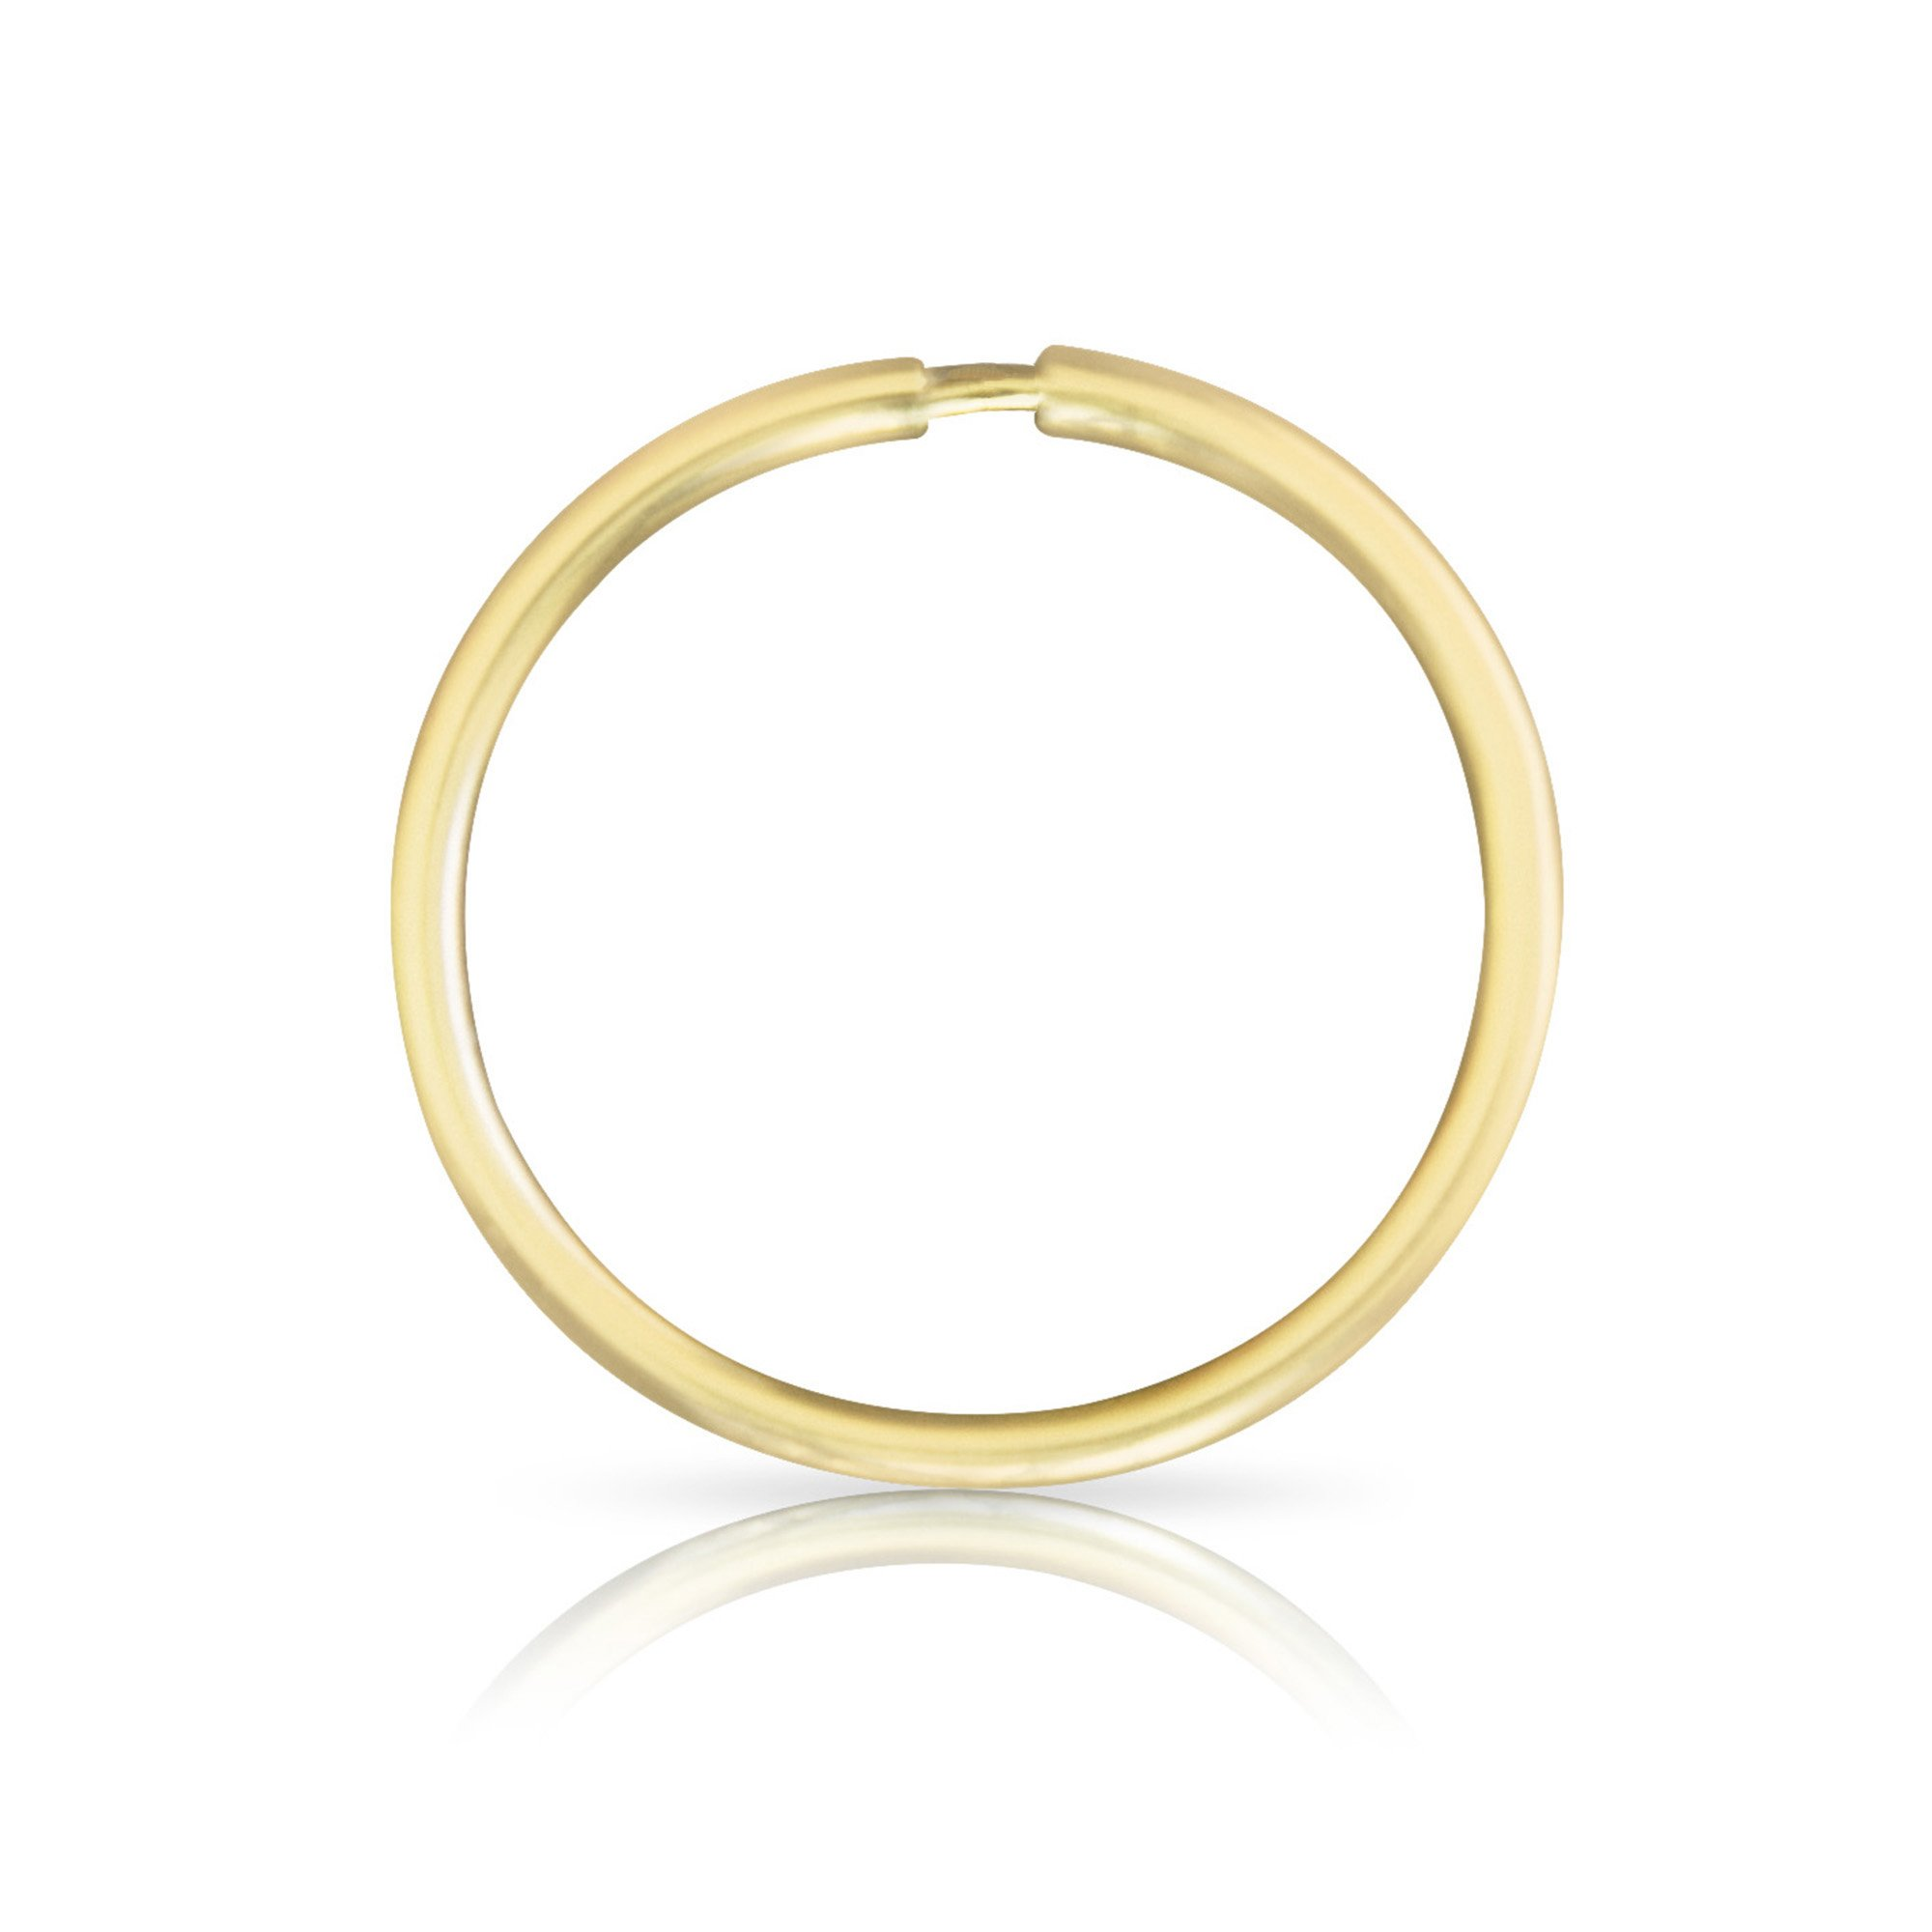 ONDAISY 1PCS 20G 12mm 14k Solid Real Gold Segment Septum Lip Nose Round Hoop Tragus Helix Cartilage Daith Inner Outer Conch Ring Ear Piercing Earring by ONDAISY